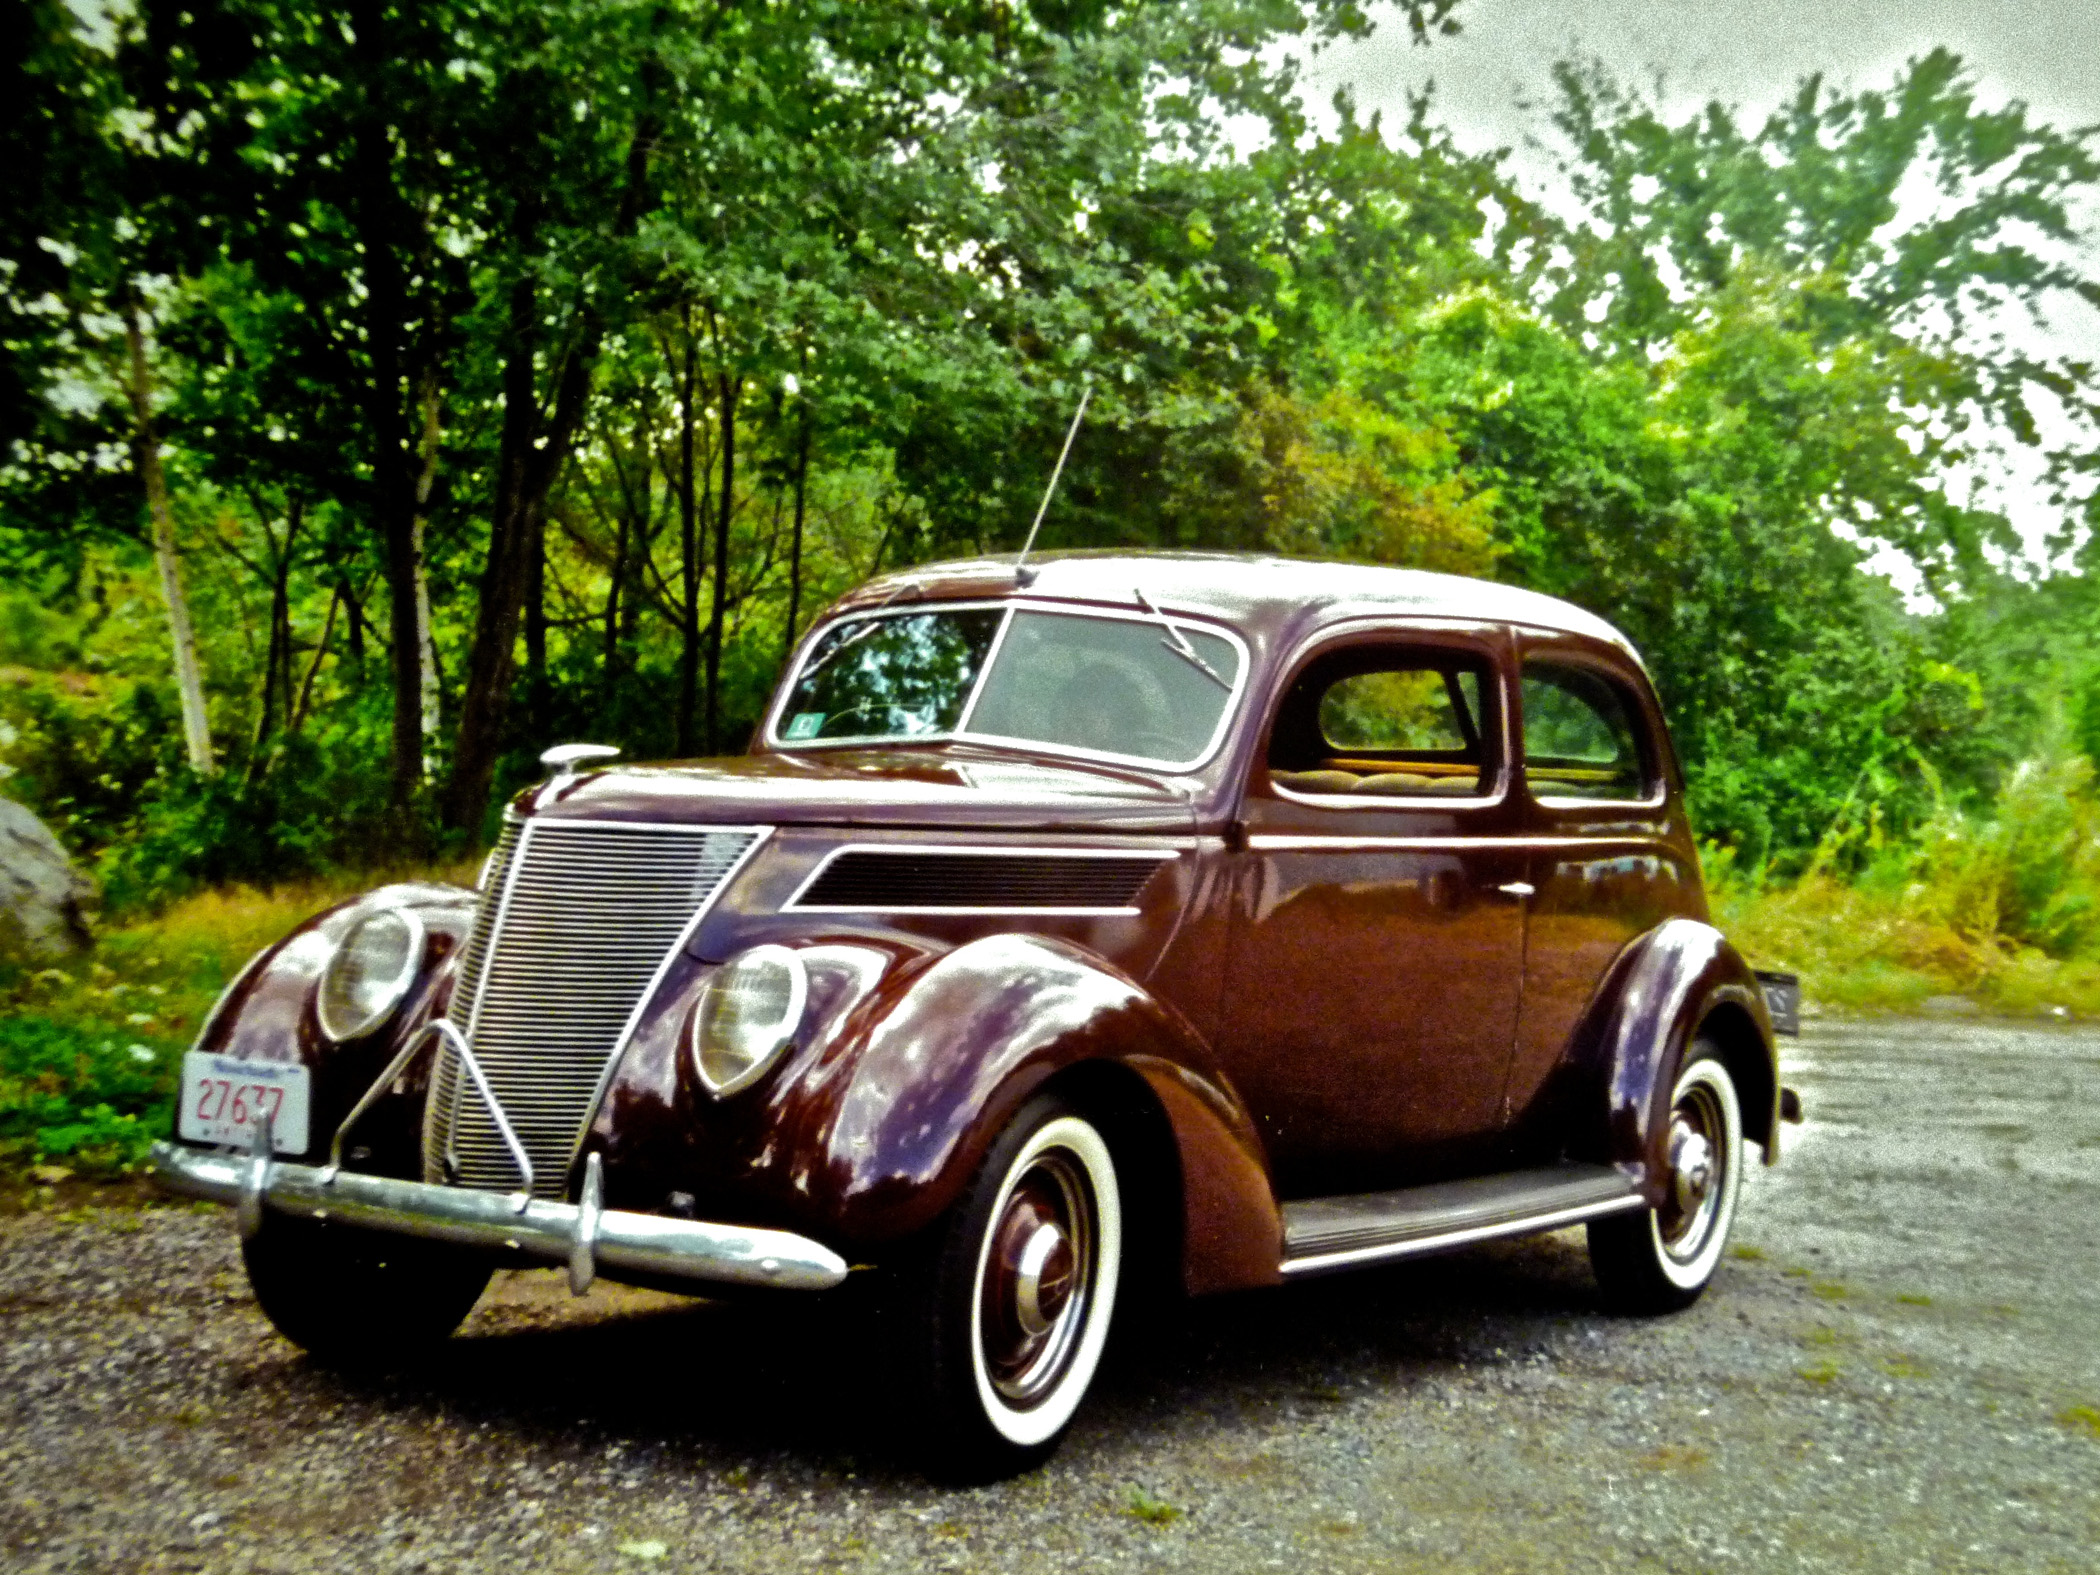 1937 Ford Deluxe Tudor Touring Sedan Grabs Attention - Classic ...